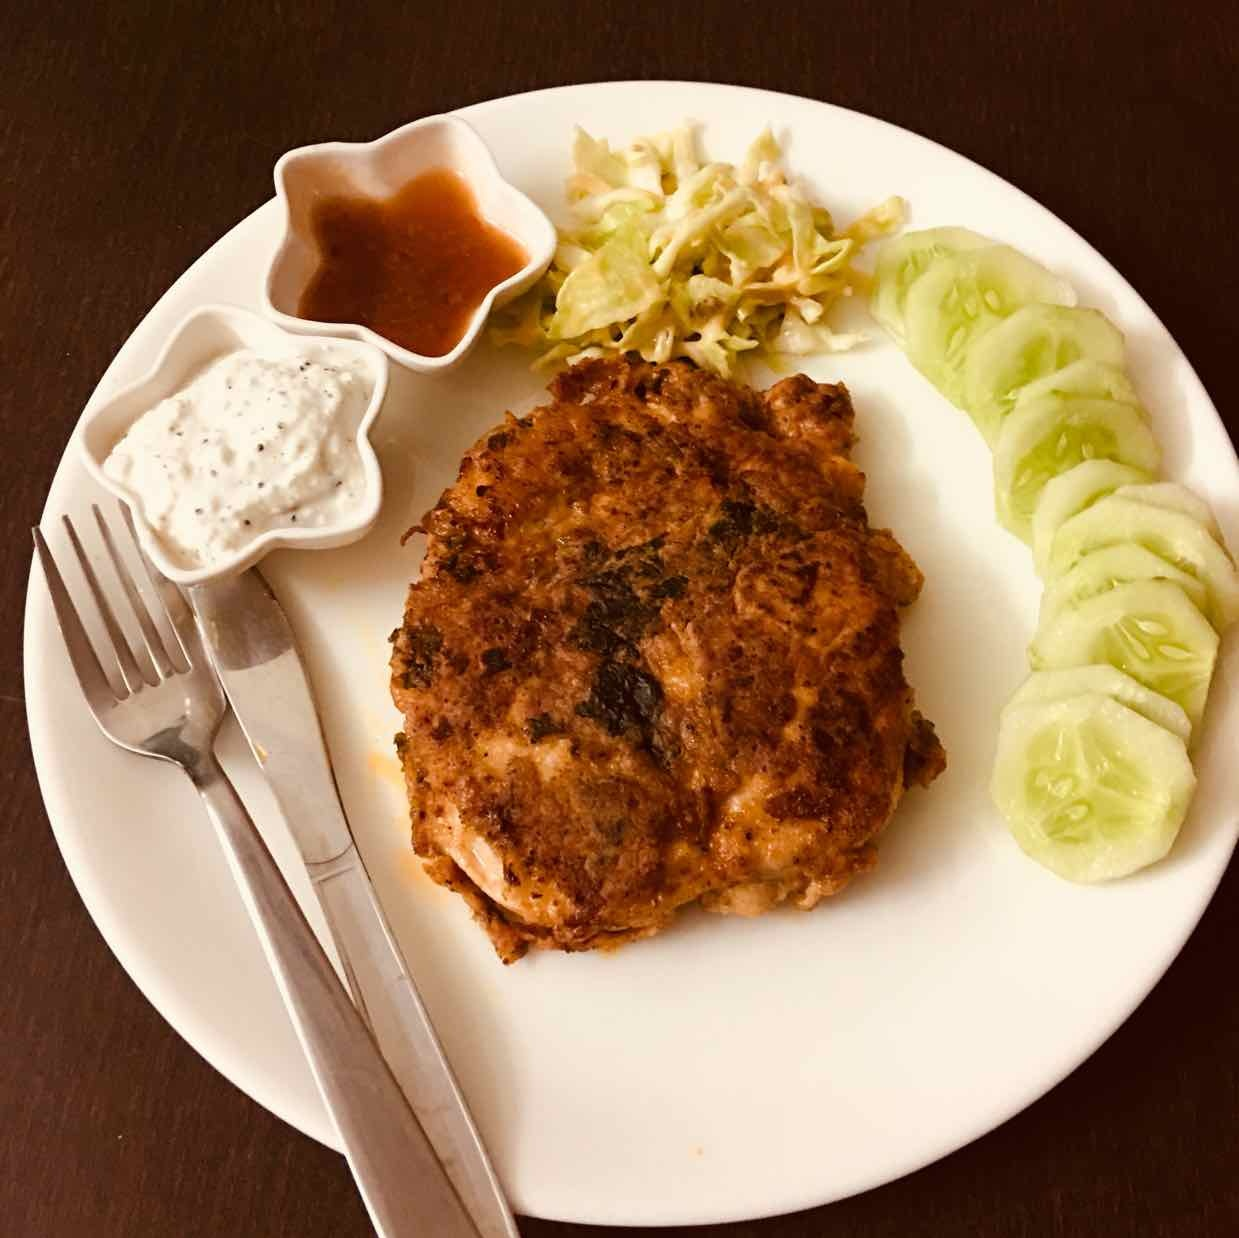 How to make chicken steak